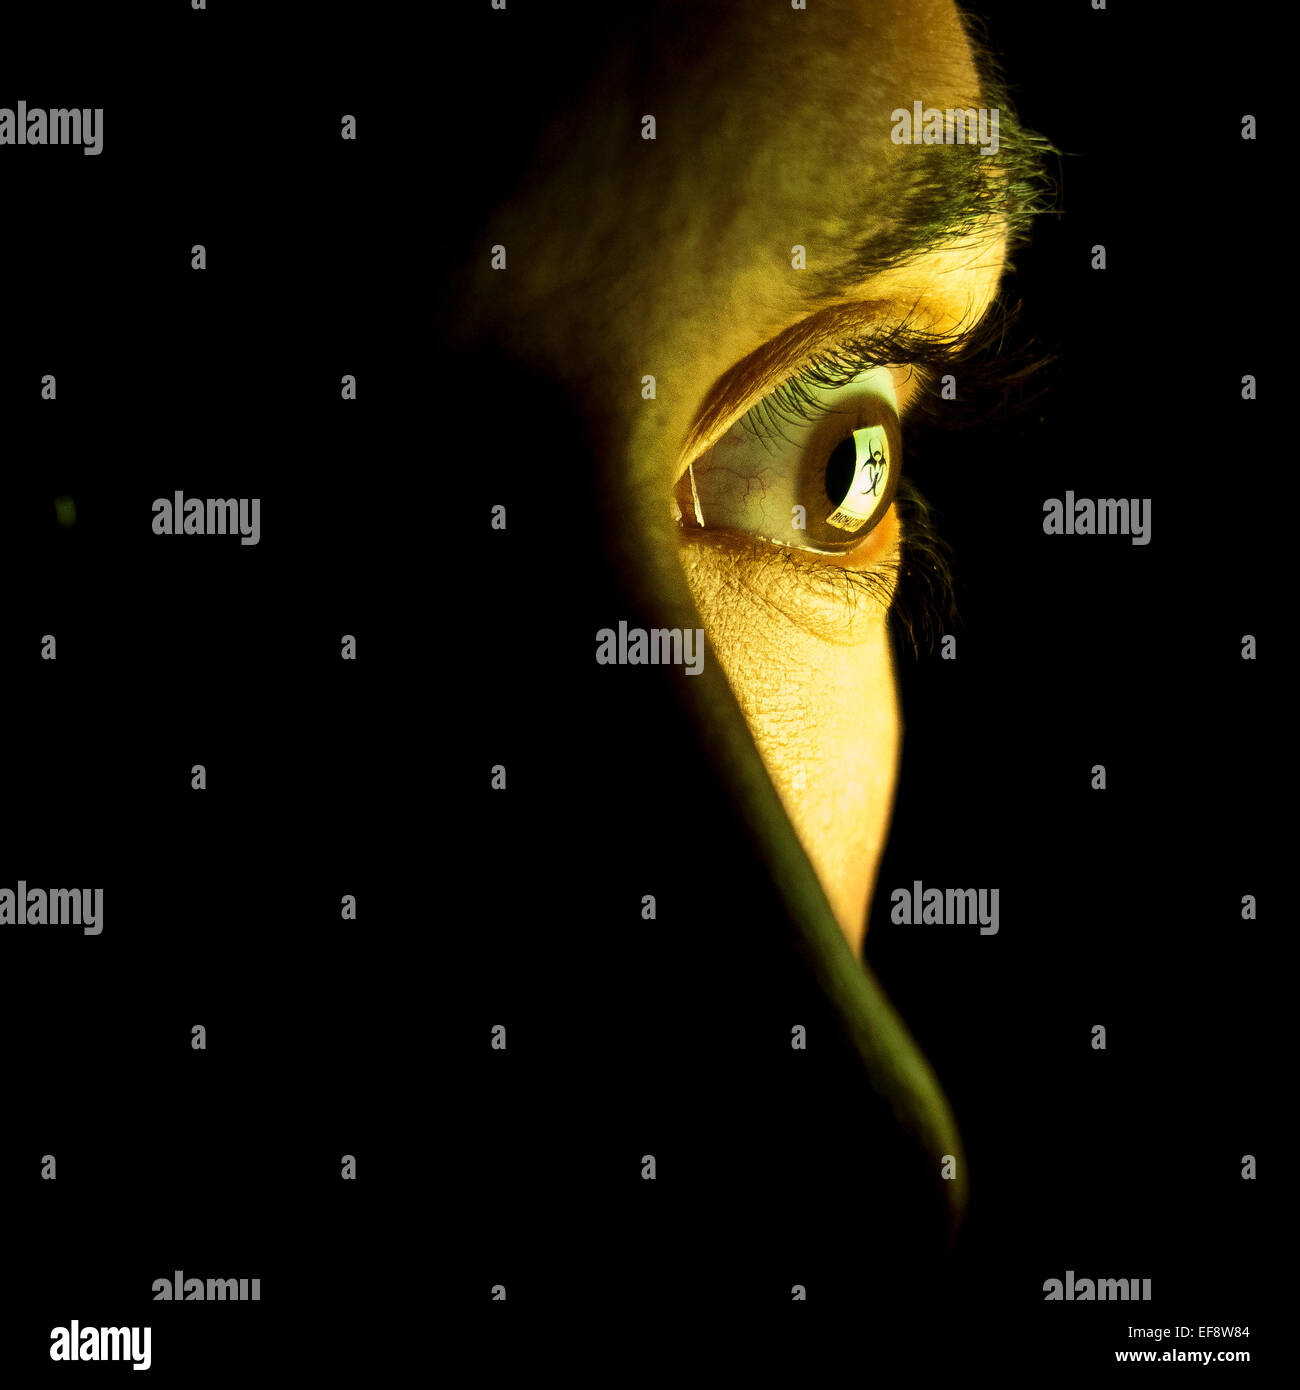 Close-up of eye with reflection of hazard symbol - Stock Image